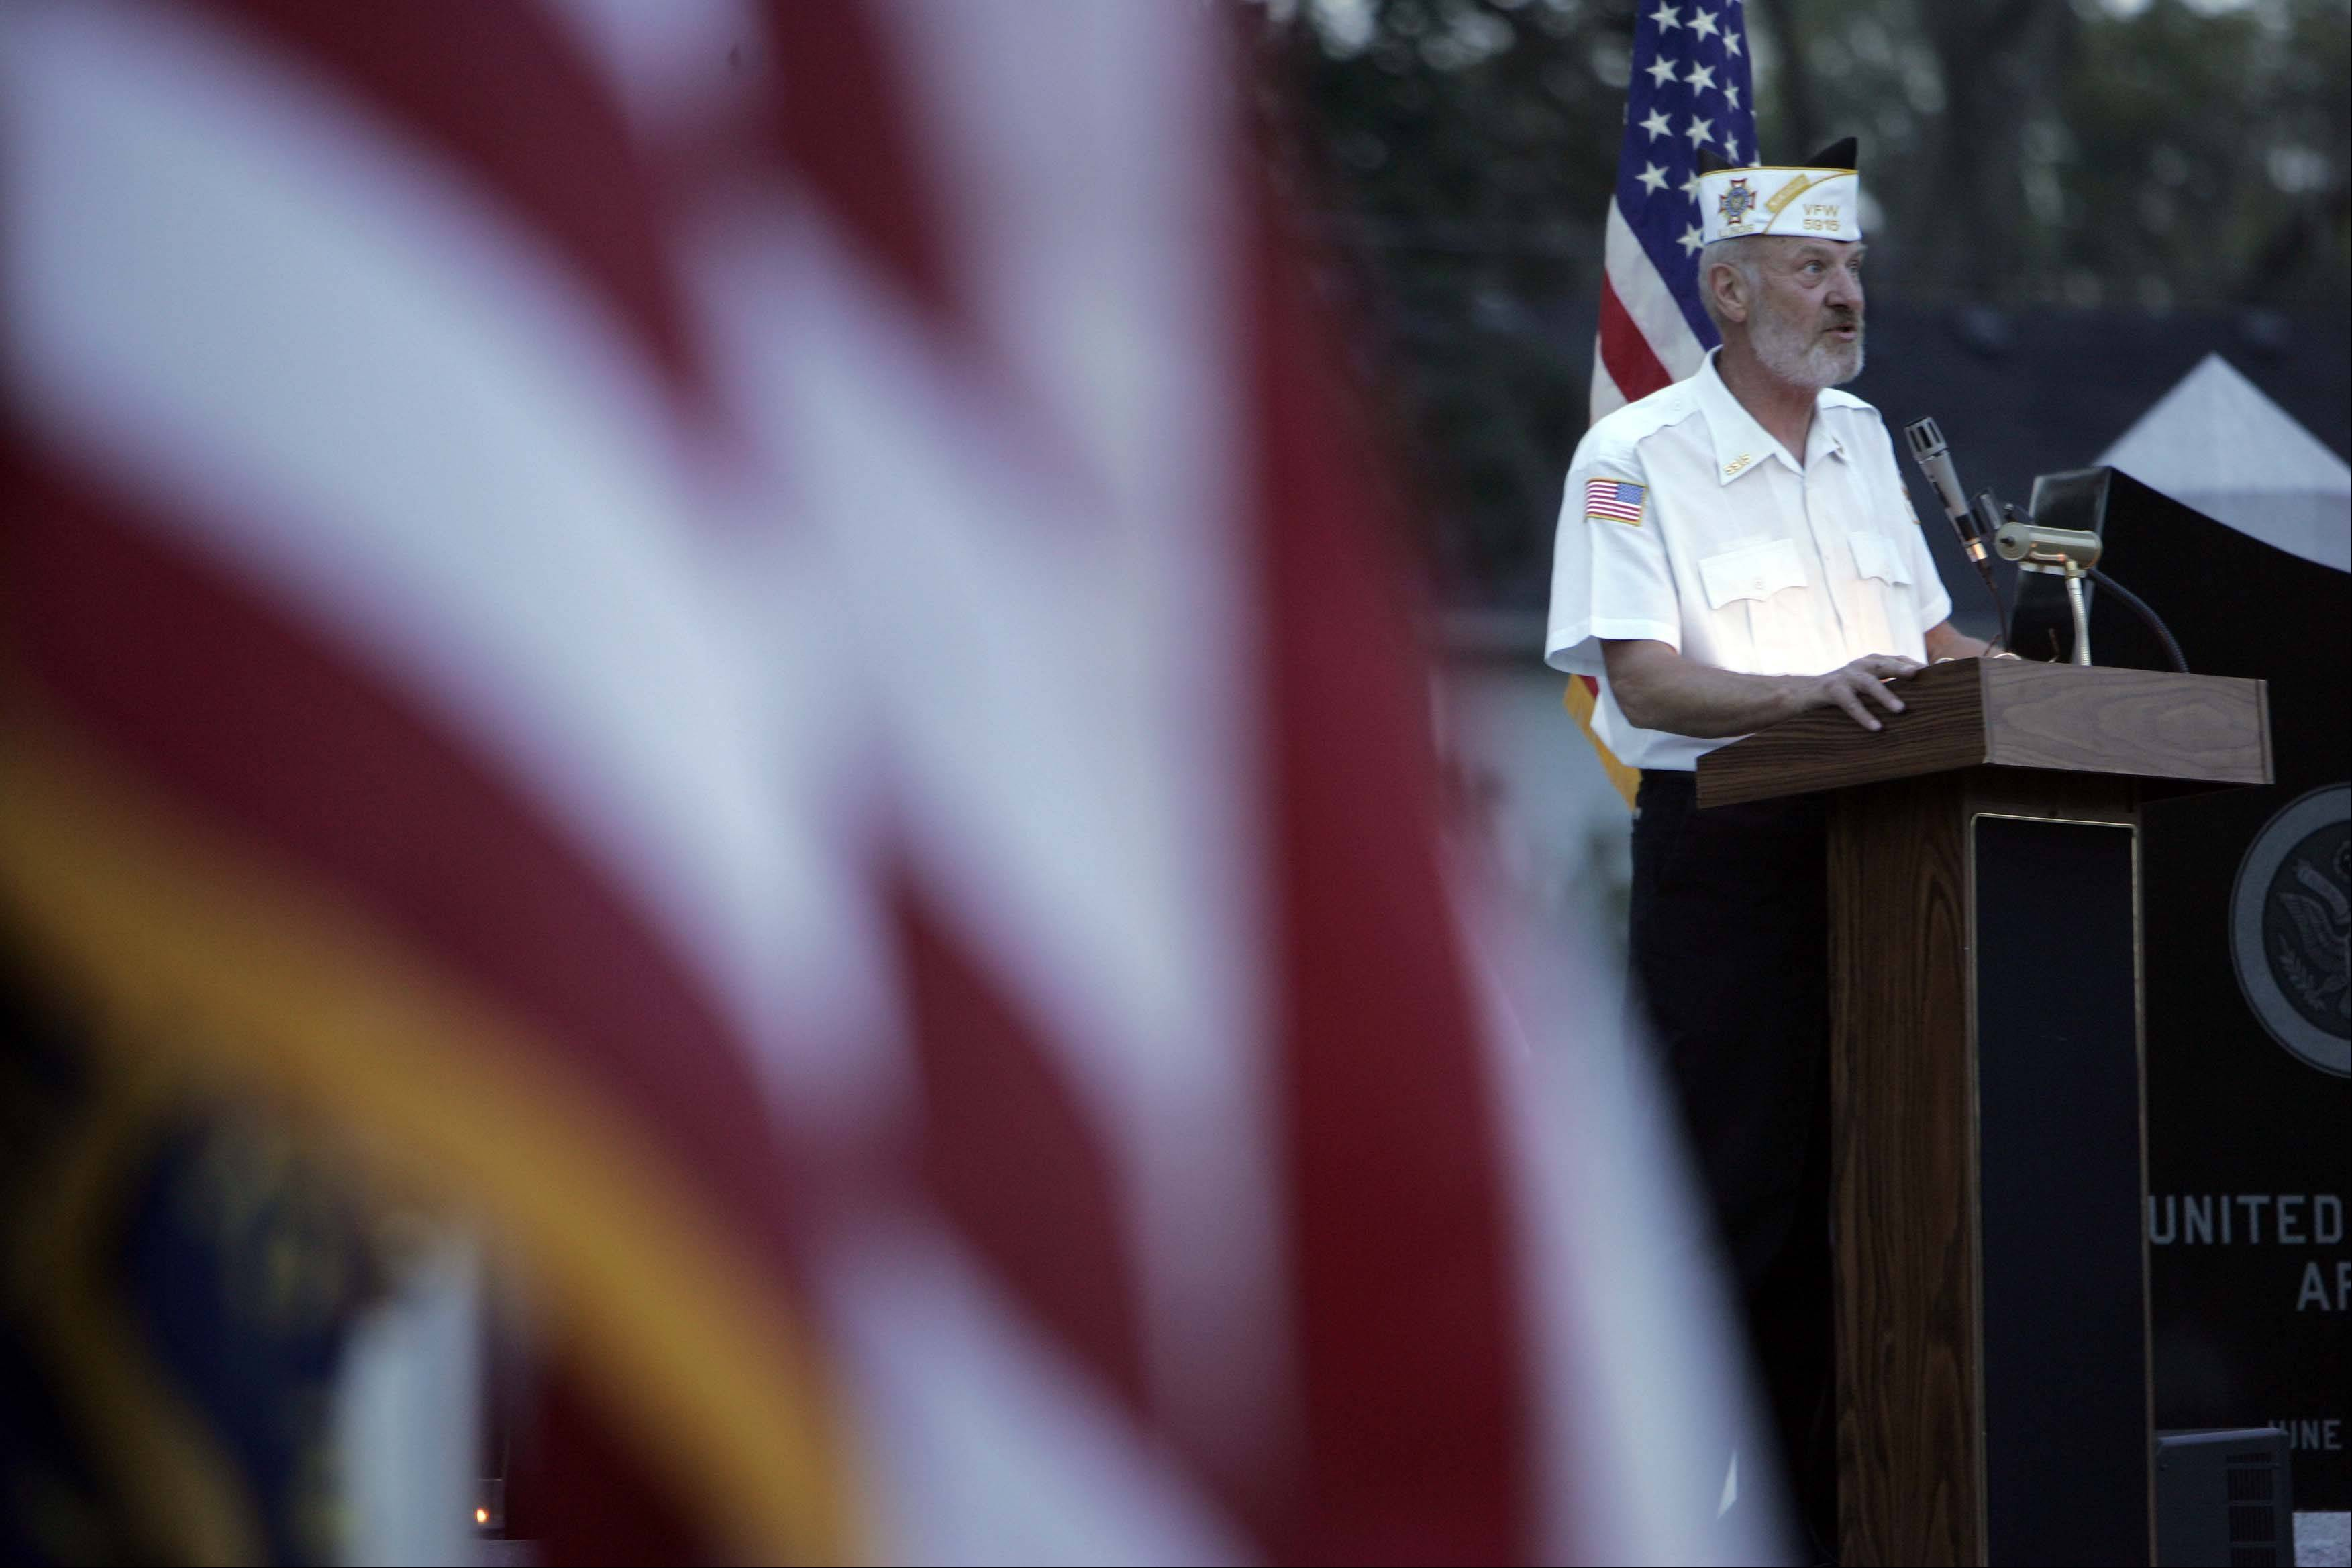 Jack Hosey, of Elgin, addresses the crowd during Carpentersville Veterans of Foreign Wars Post 5915's 20th annual ceremony of honor and remembrance on National POW/MIA Recognition Day in 2007 at Veterans Garden in Carpenter Park.